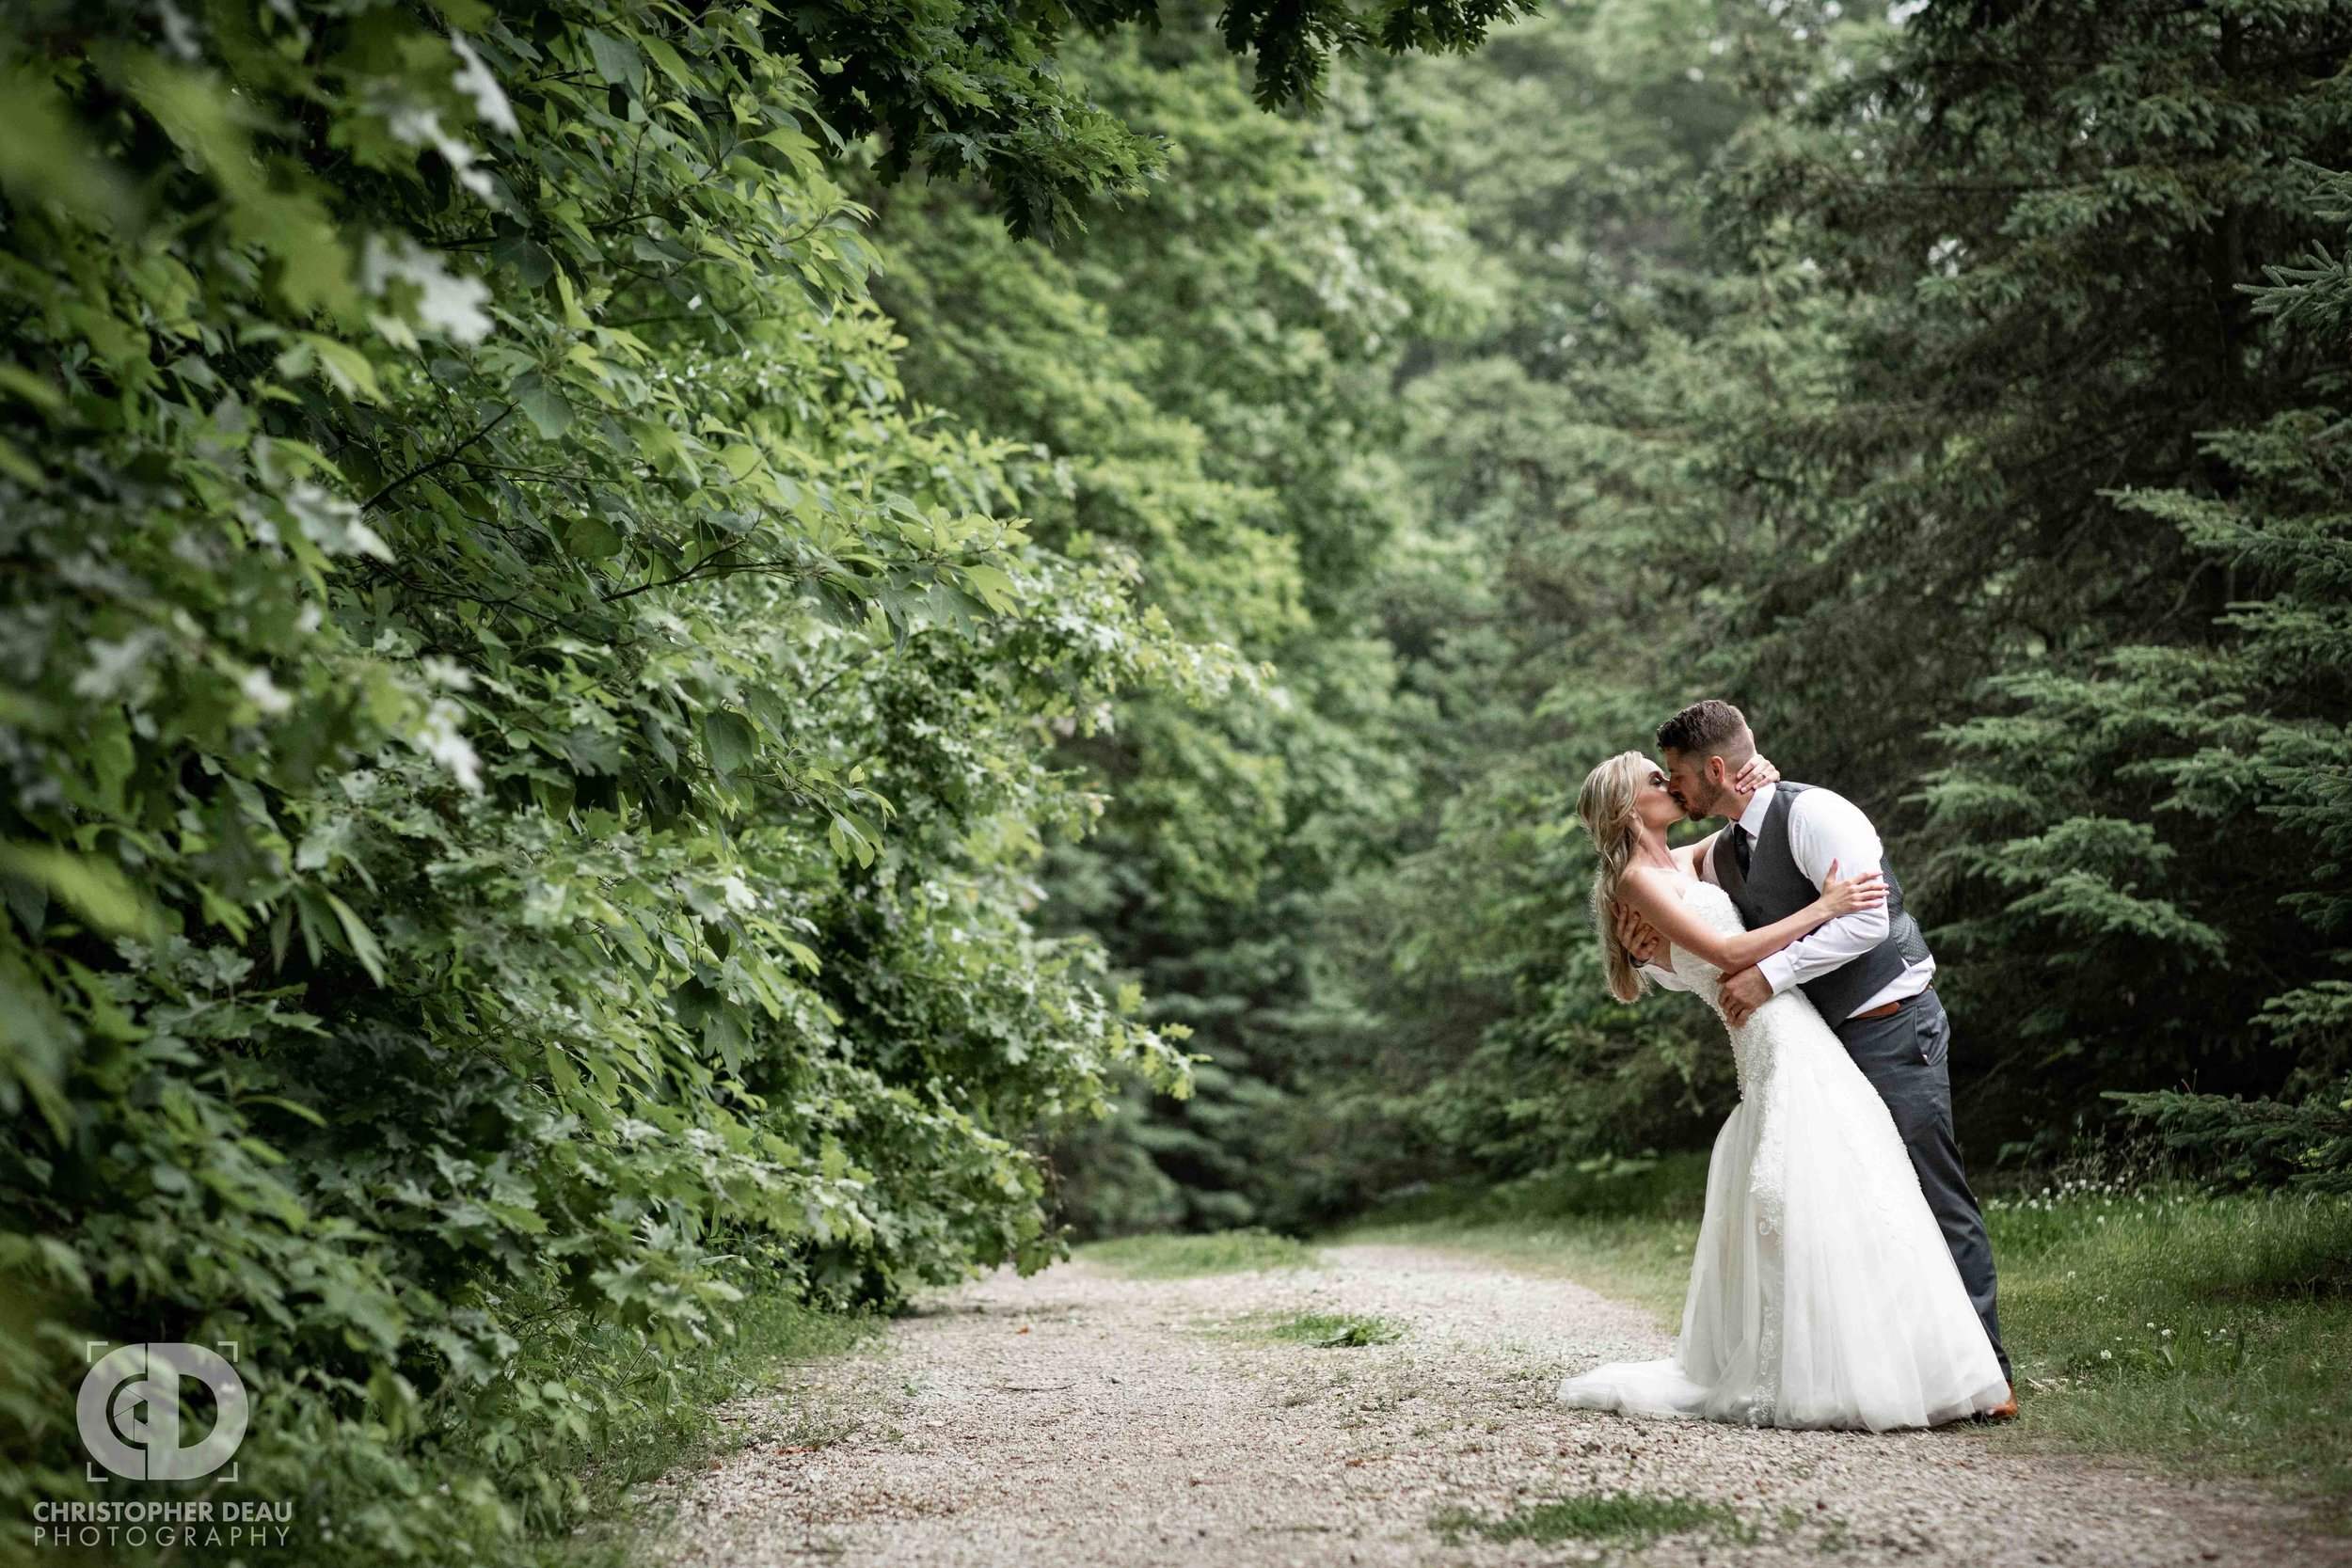 bride and groom on a dirt road with pine trees at Gable Hill